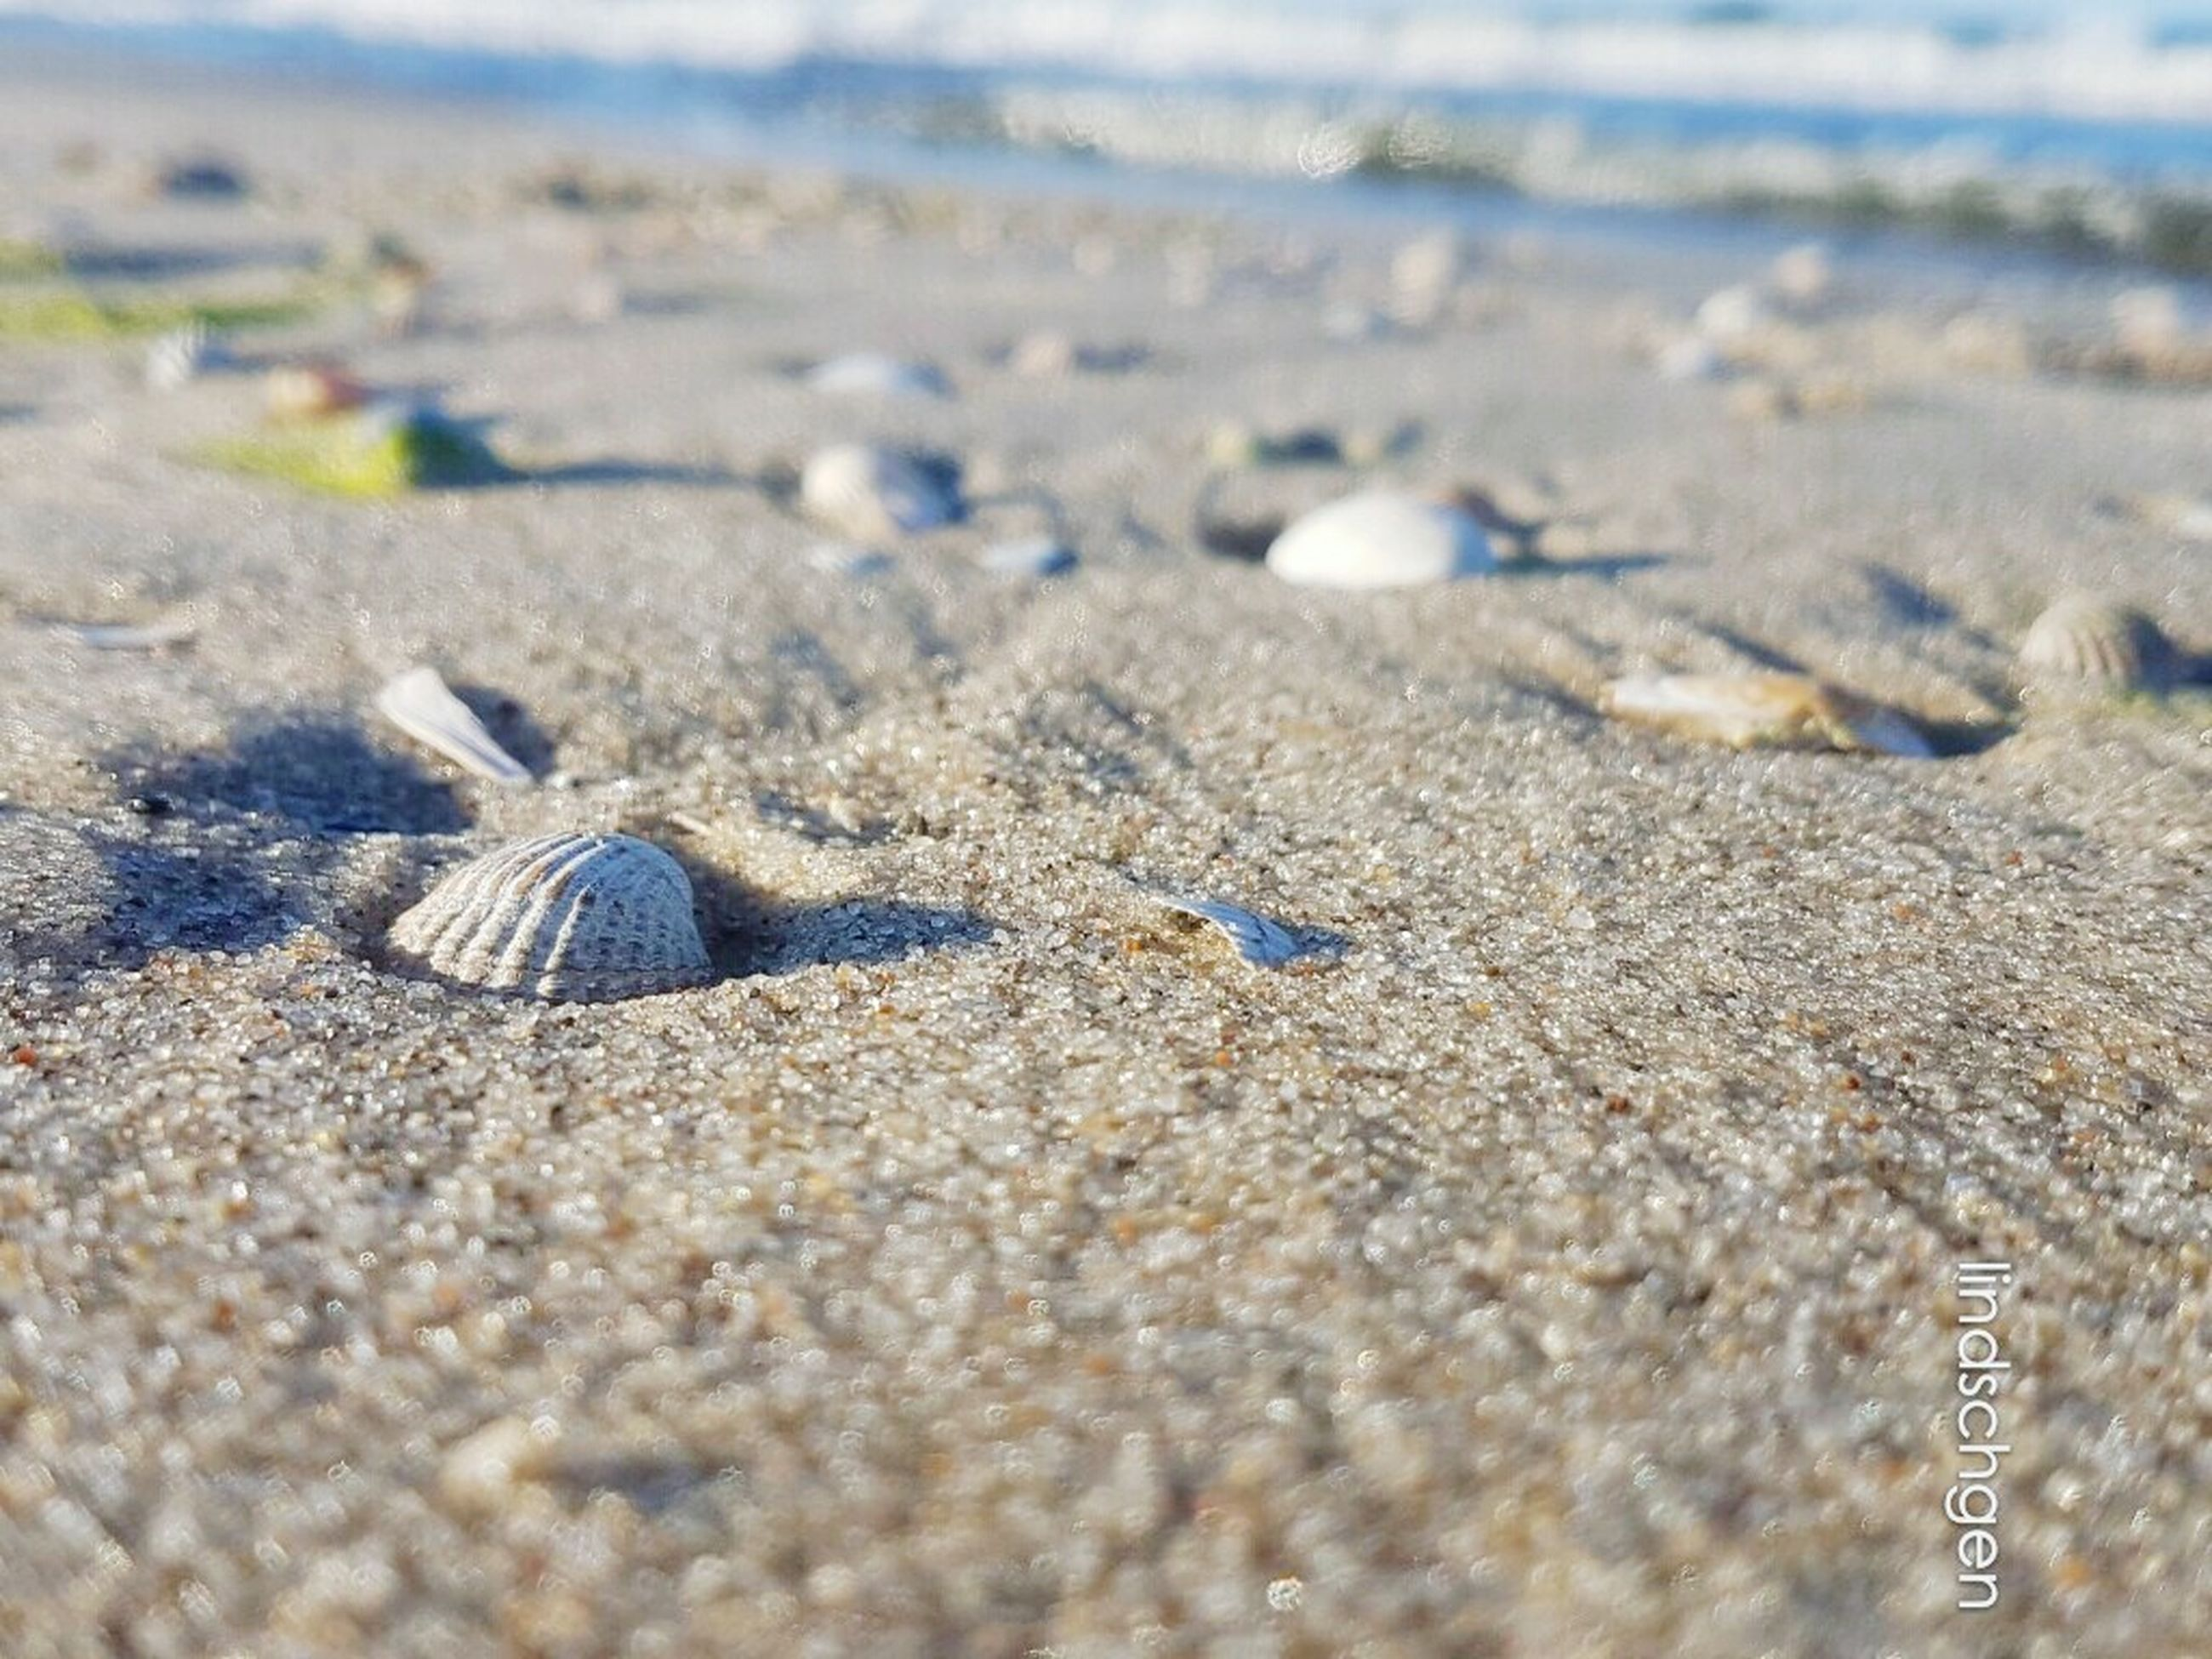 beach, sand, shore, surface level, selective focus, travel, nature, travel destinations, seashell, summer, tranquility, pebble, water, tourism, sea, vacations, scenics, day, beauty in nature, coastline, outdoors, tranquil scene, non-urban scene, sandy, arid climate